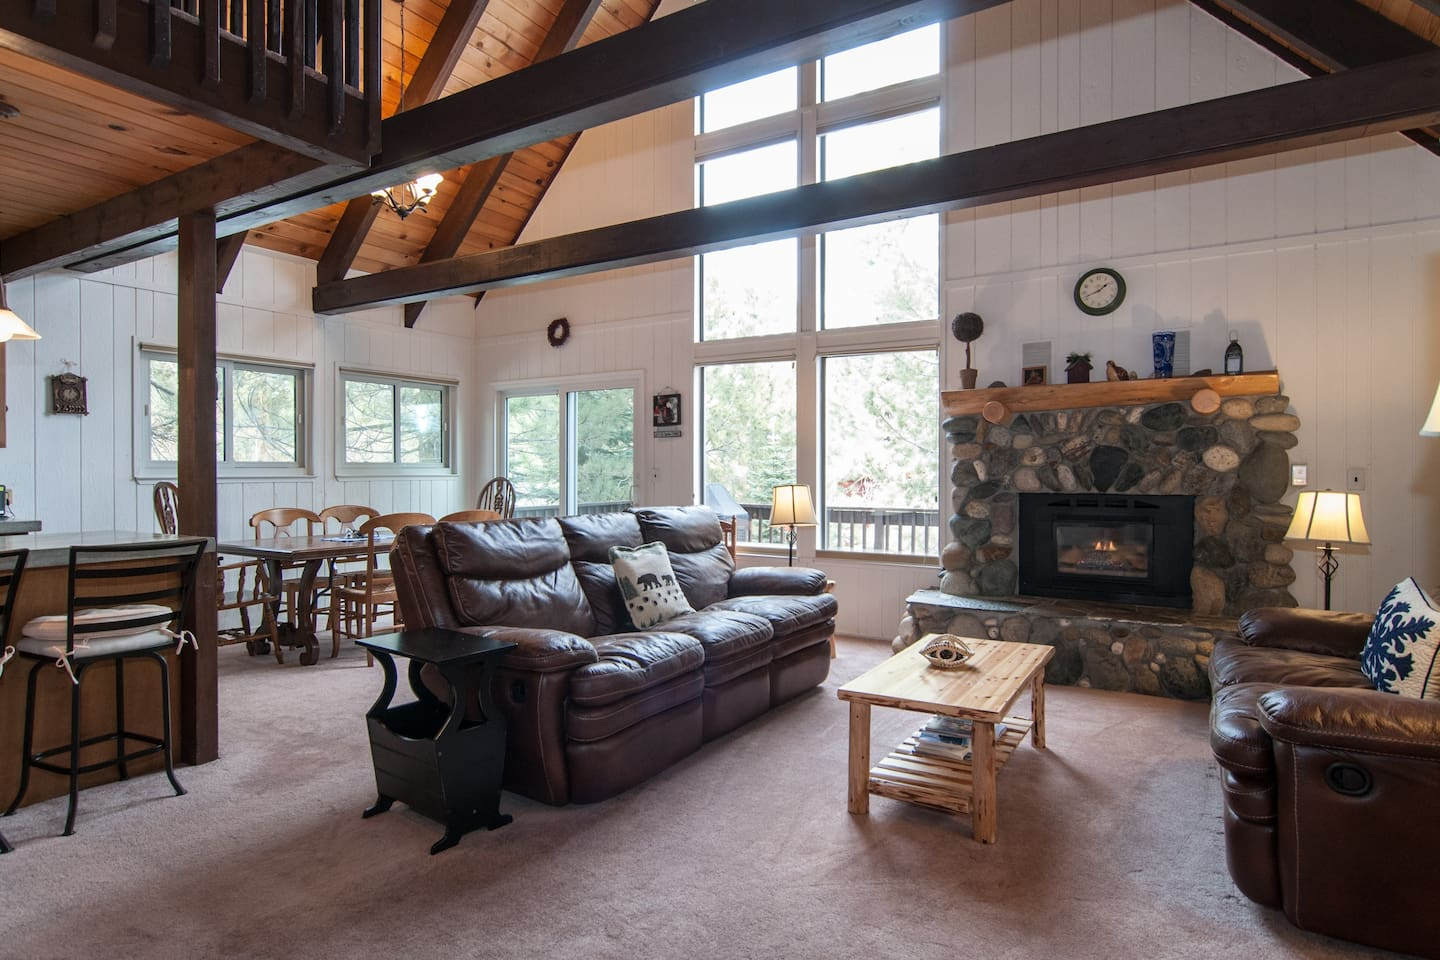 Open layout, exposed beams throughout, perfect for entertaining.